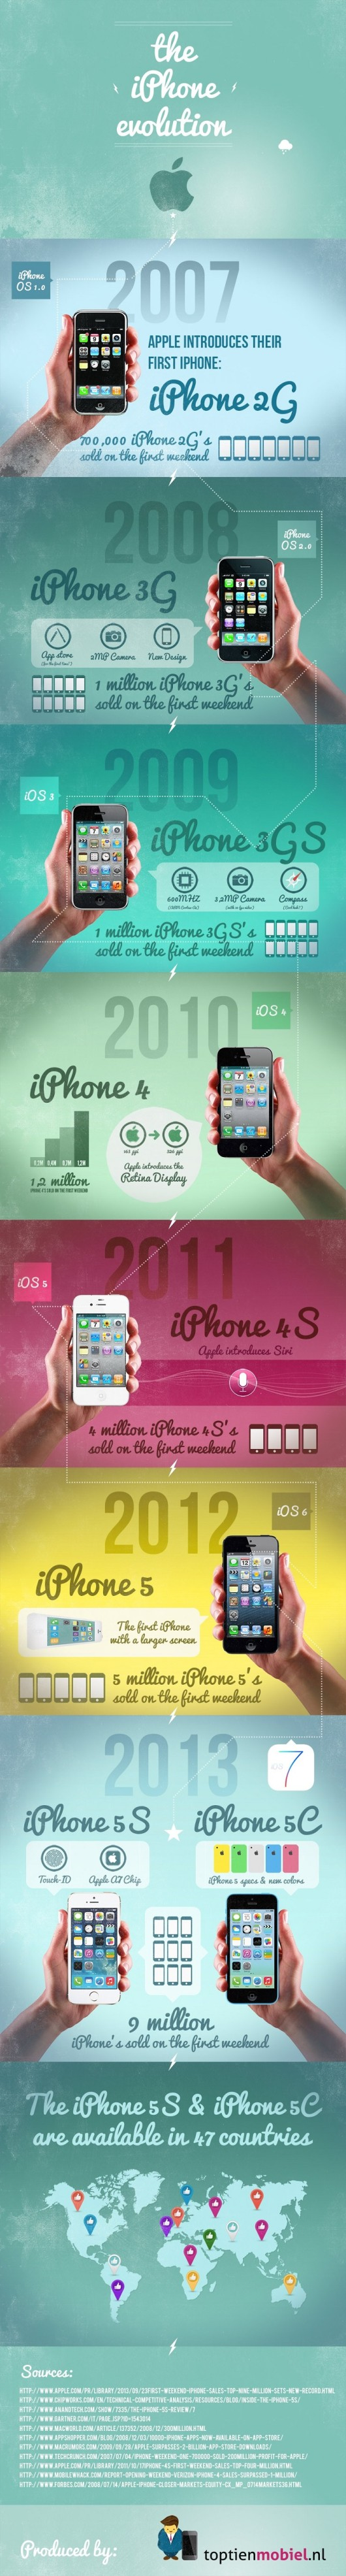 iPhone-Evolution-Infographic-530x3943